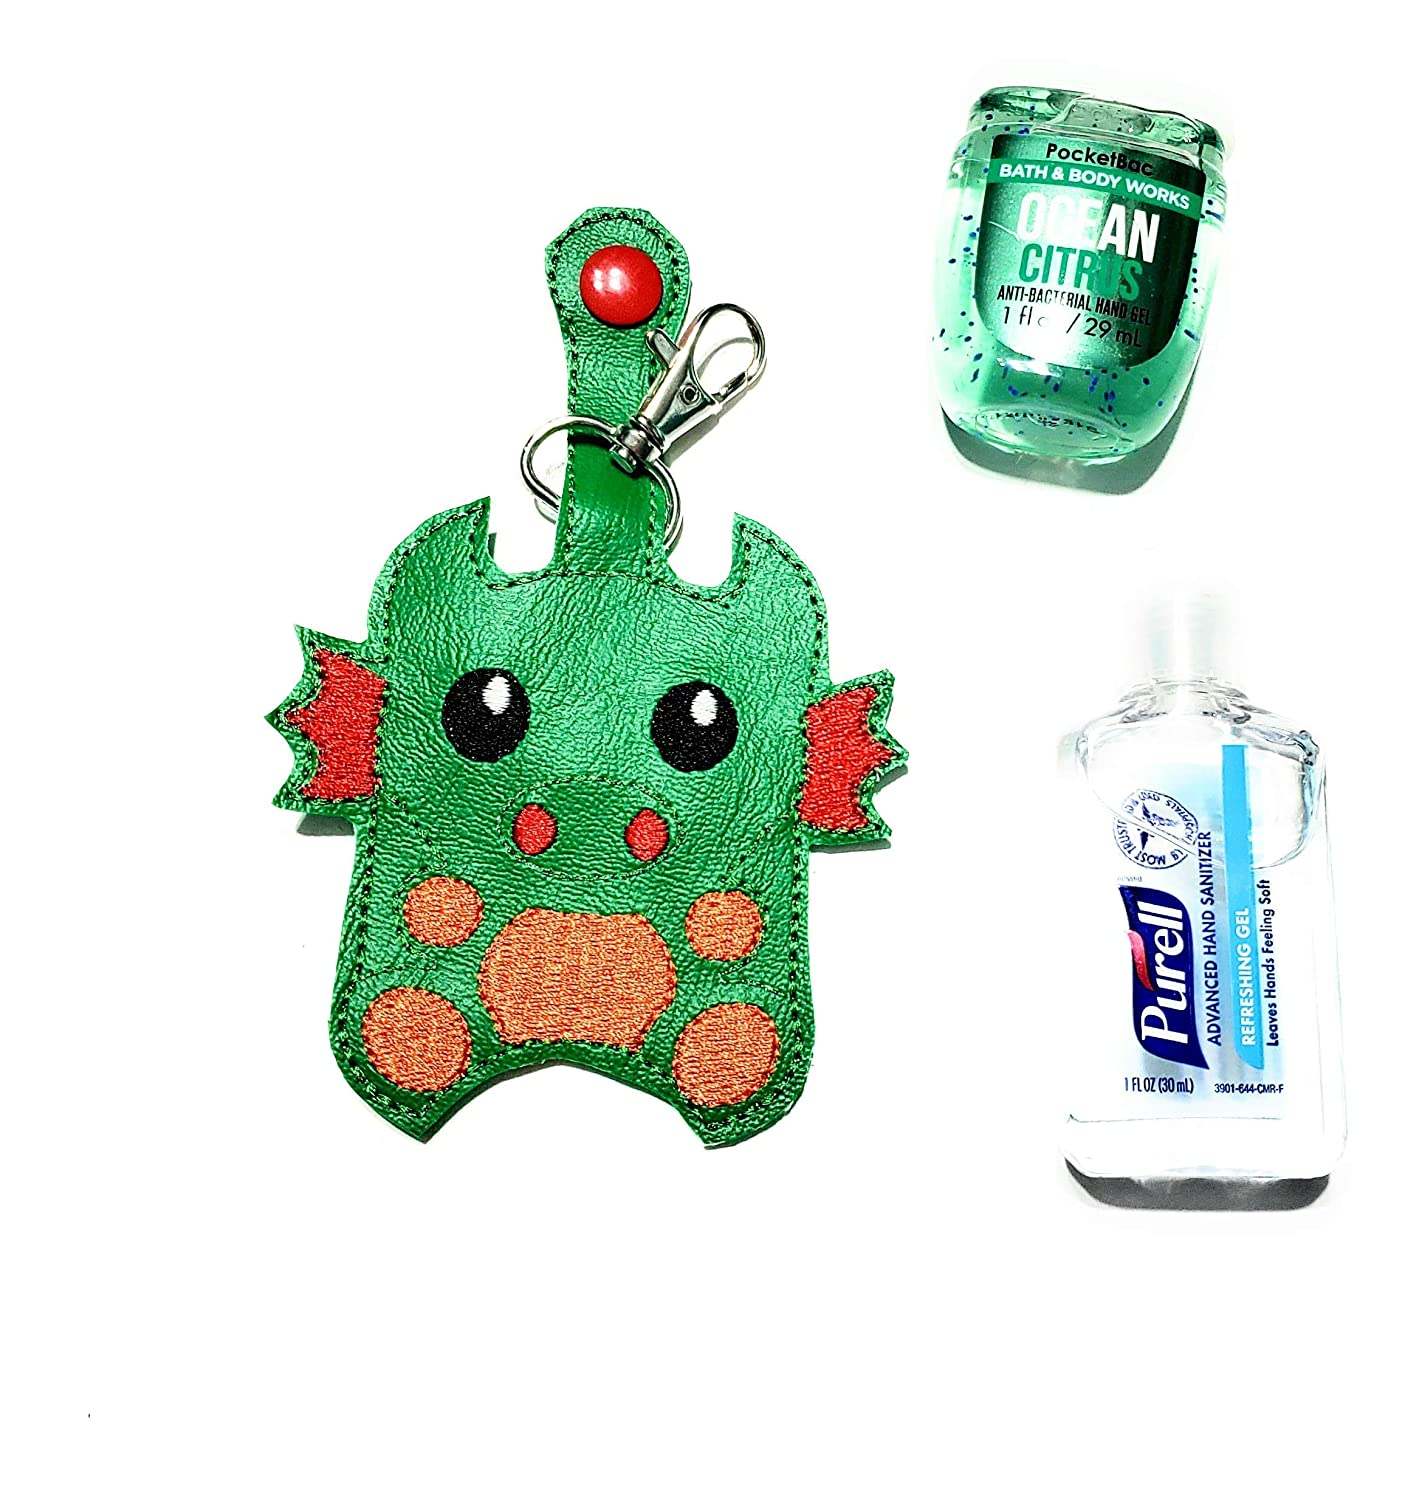 1 oz Purell and most other 1 oz sanitizers Dragon hand sanitizer case Will fit 1 oz Bath and Body